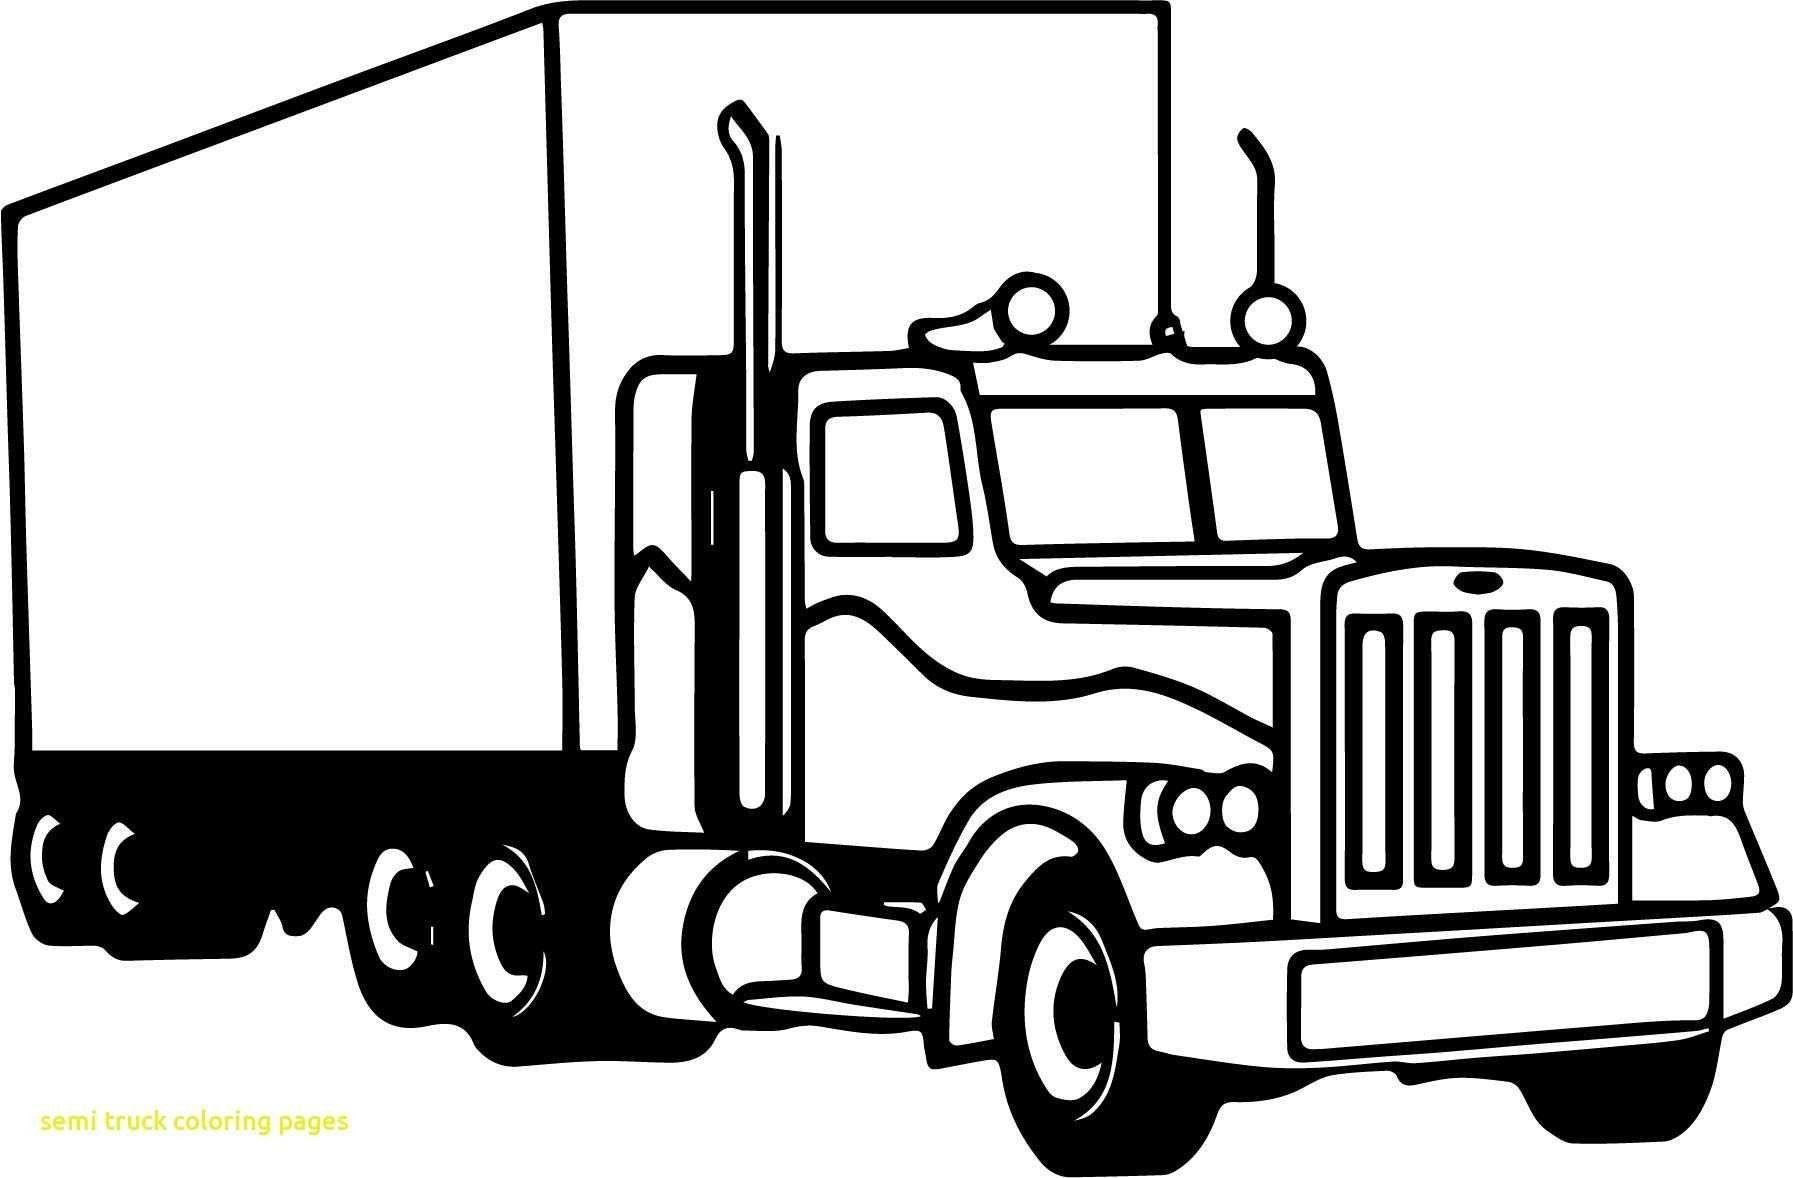 Fire Truck Coloring Page Best Of Coloring Pages Tremendous Truck Coloring Book Grave Digger Monster Truck Coloring Pages Cars Coloring Pages Coloring Pages